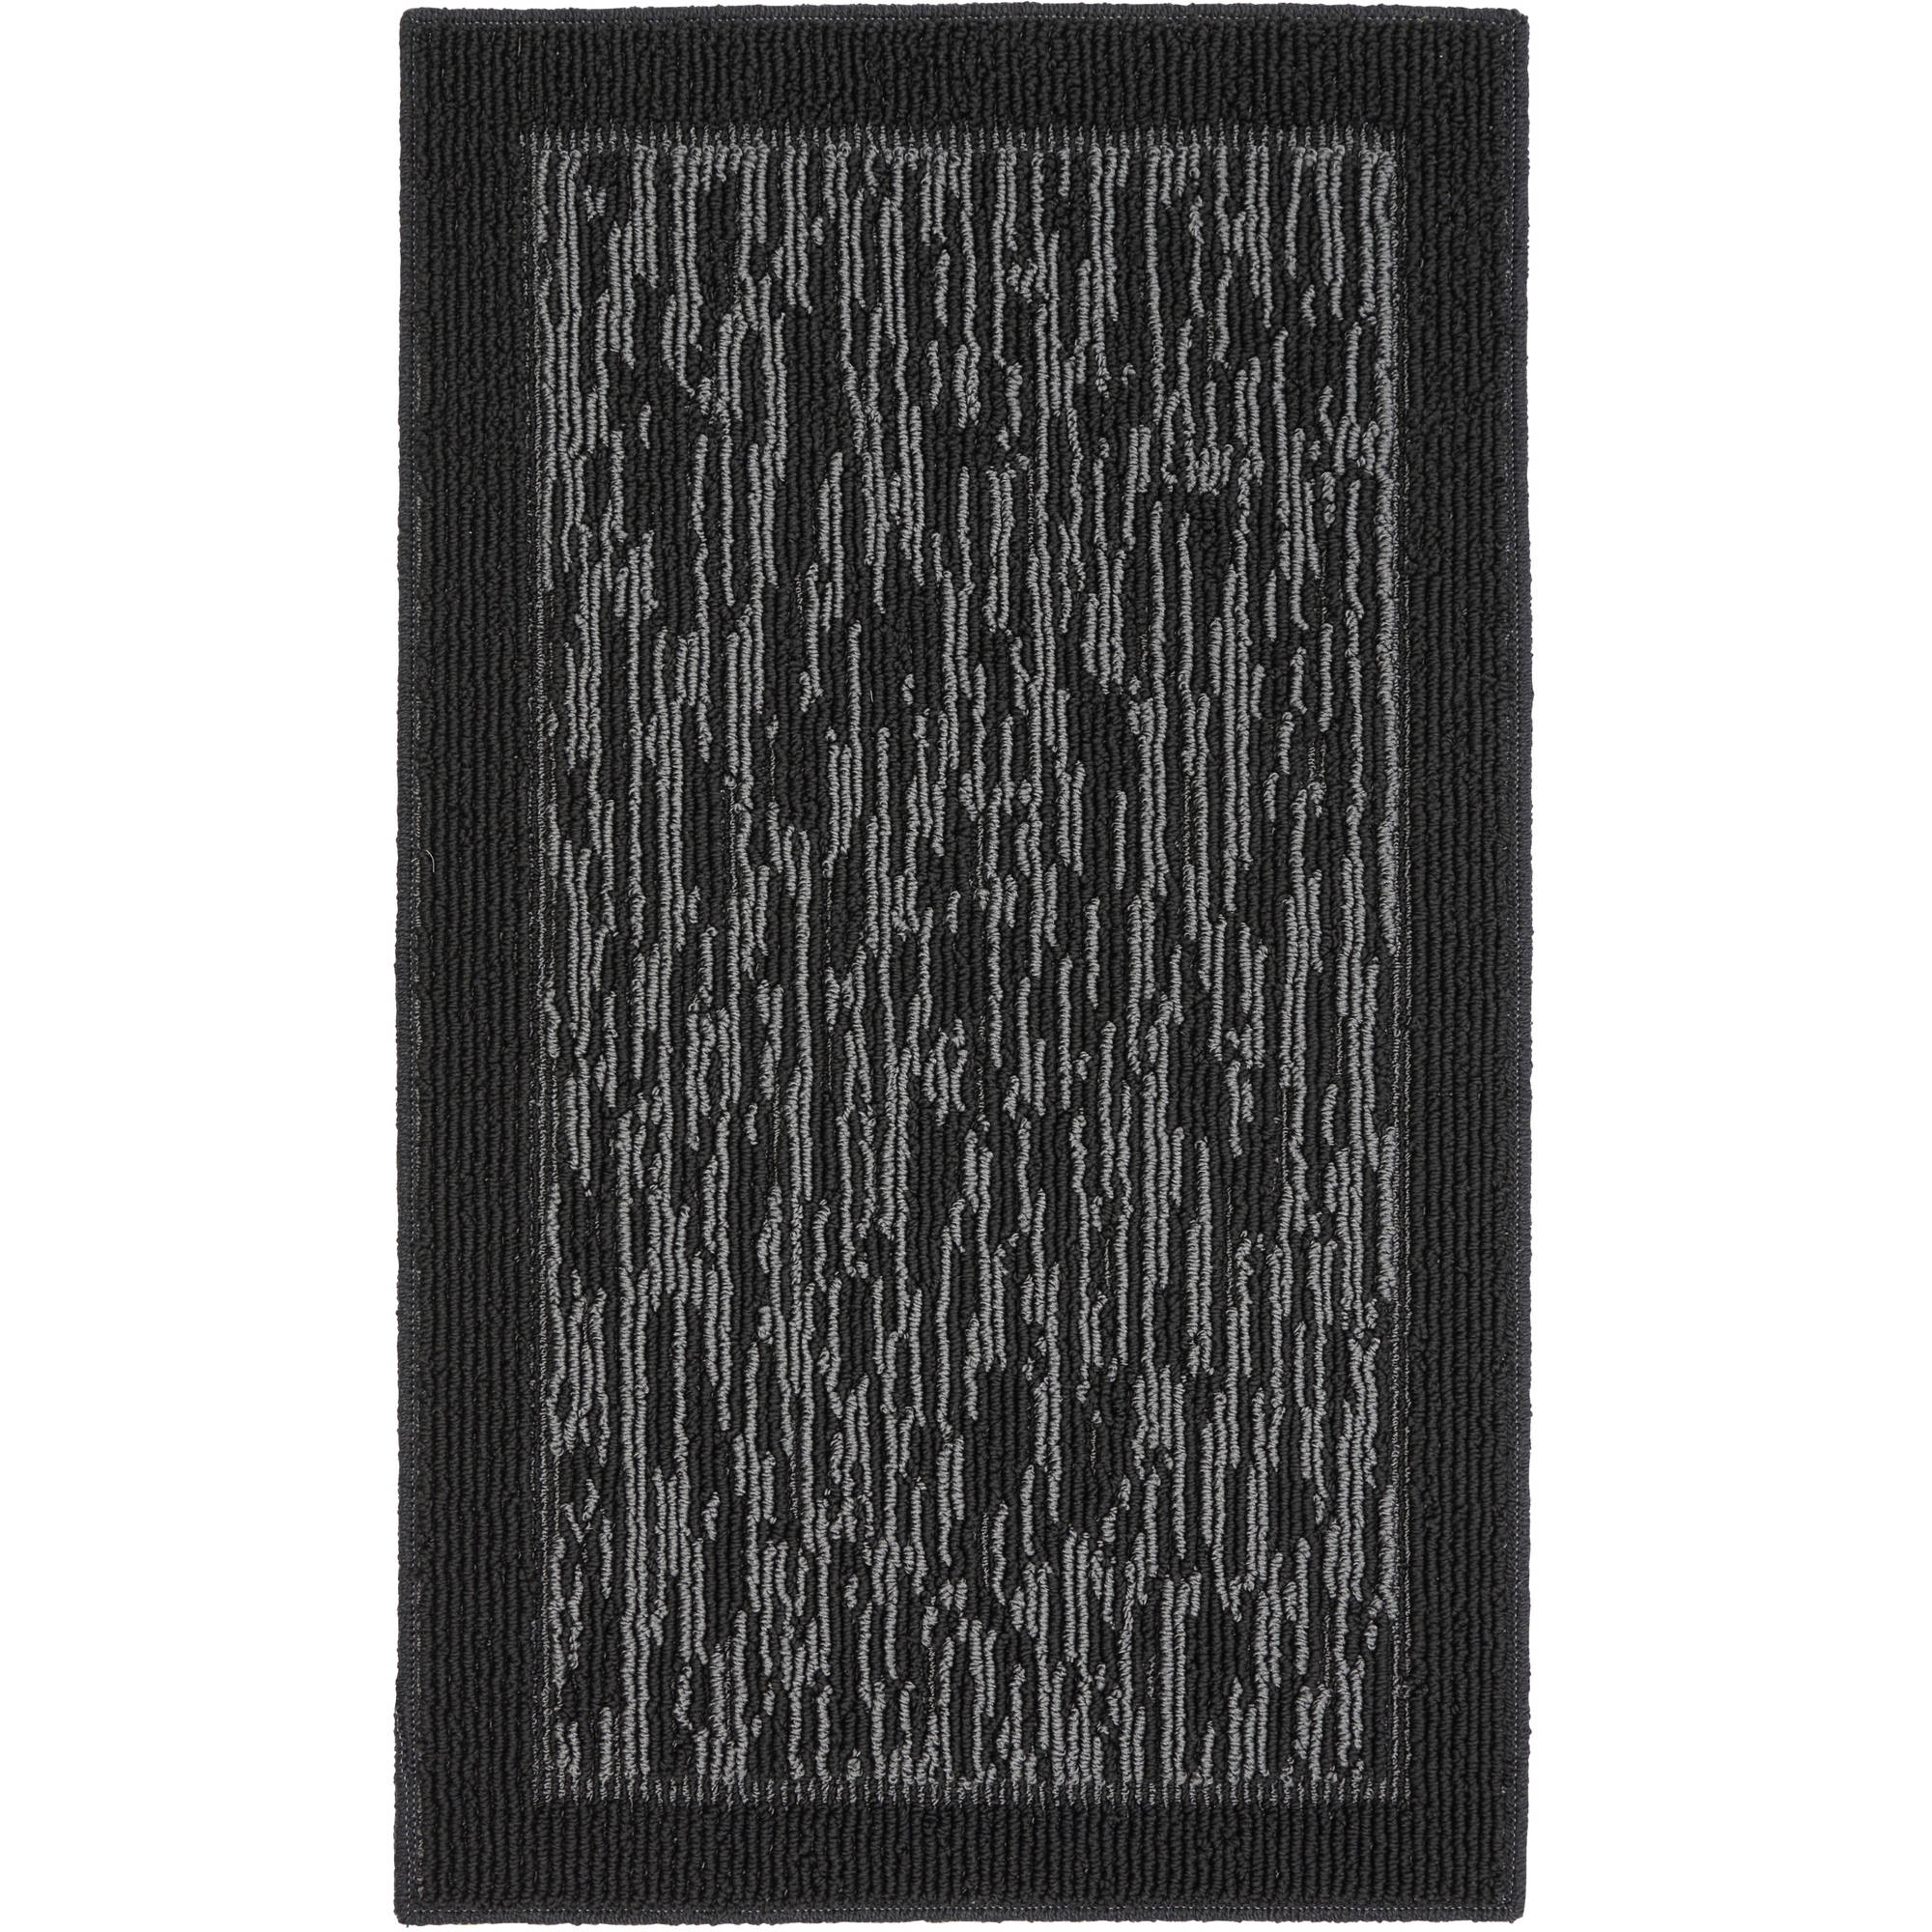 "Mohawk Home Canopy Kitchen Rug, Moonless Night, 1'8"" x 2'10"""